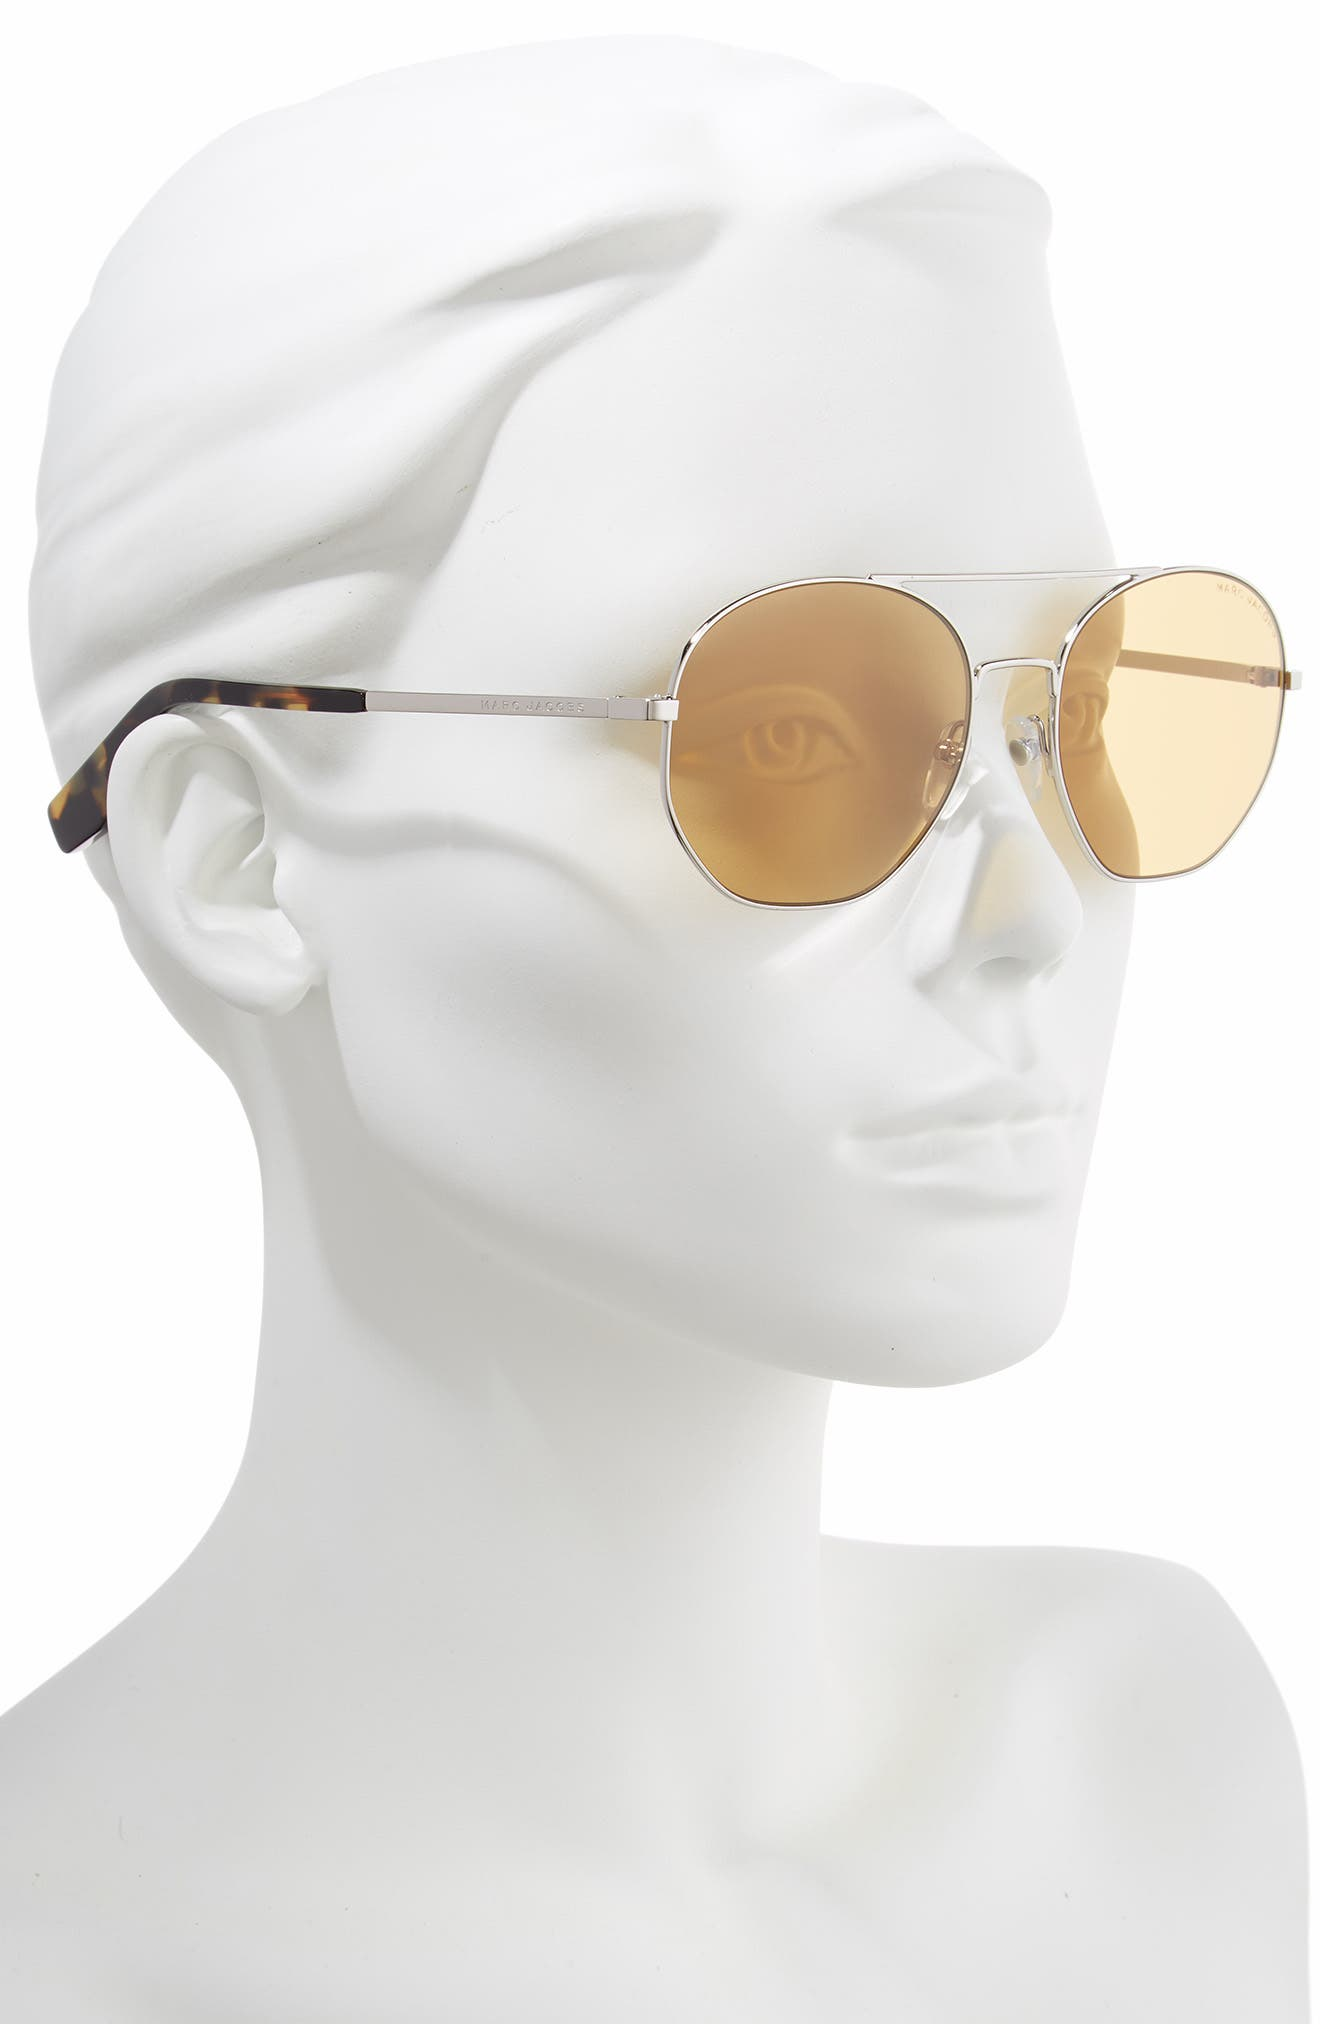 57mm Round Aviator Sunglasses,                             Alternate thumbnail 2, color,                             SILVER/ BROWN